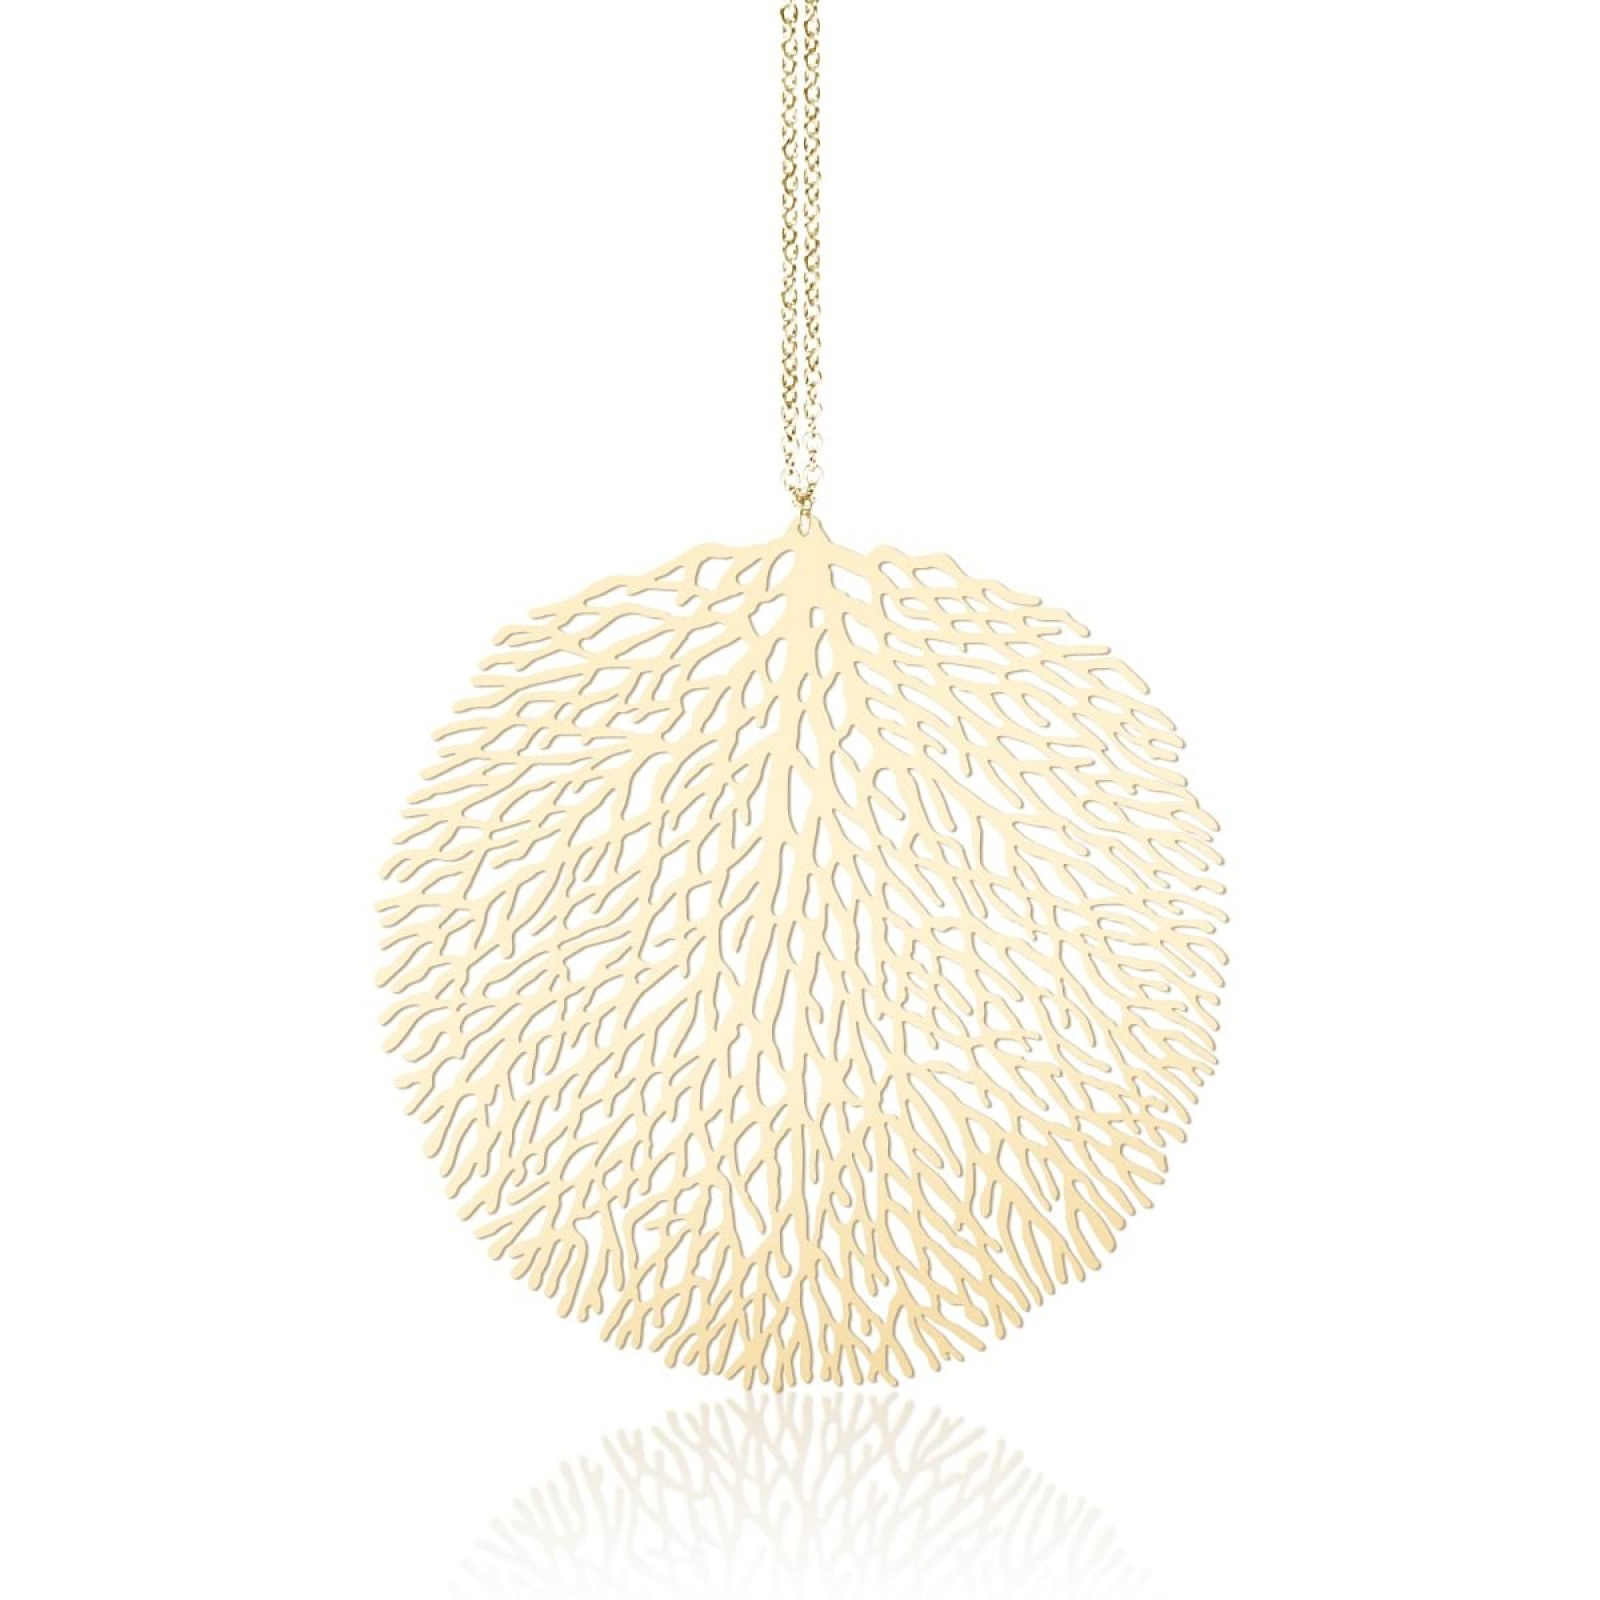 Woods M Pendant (Gold) - Moorigin